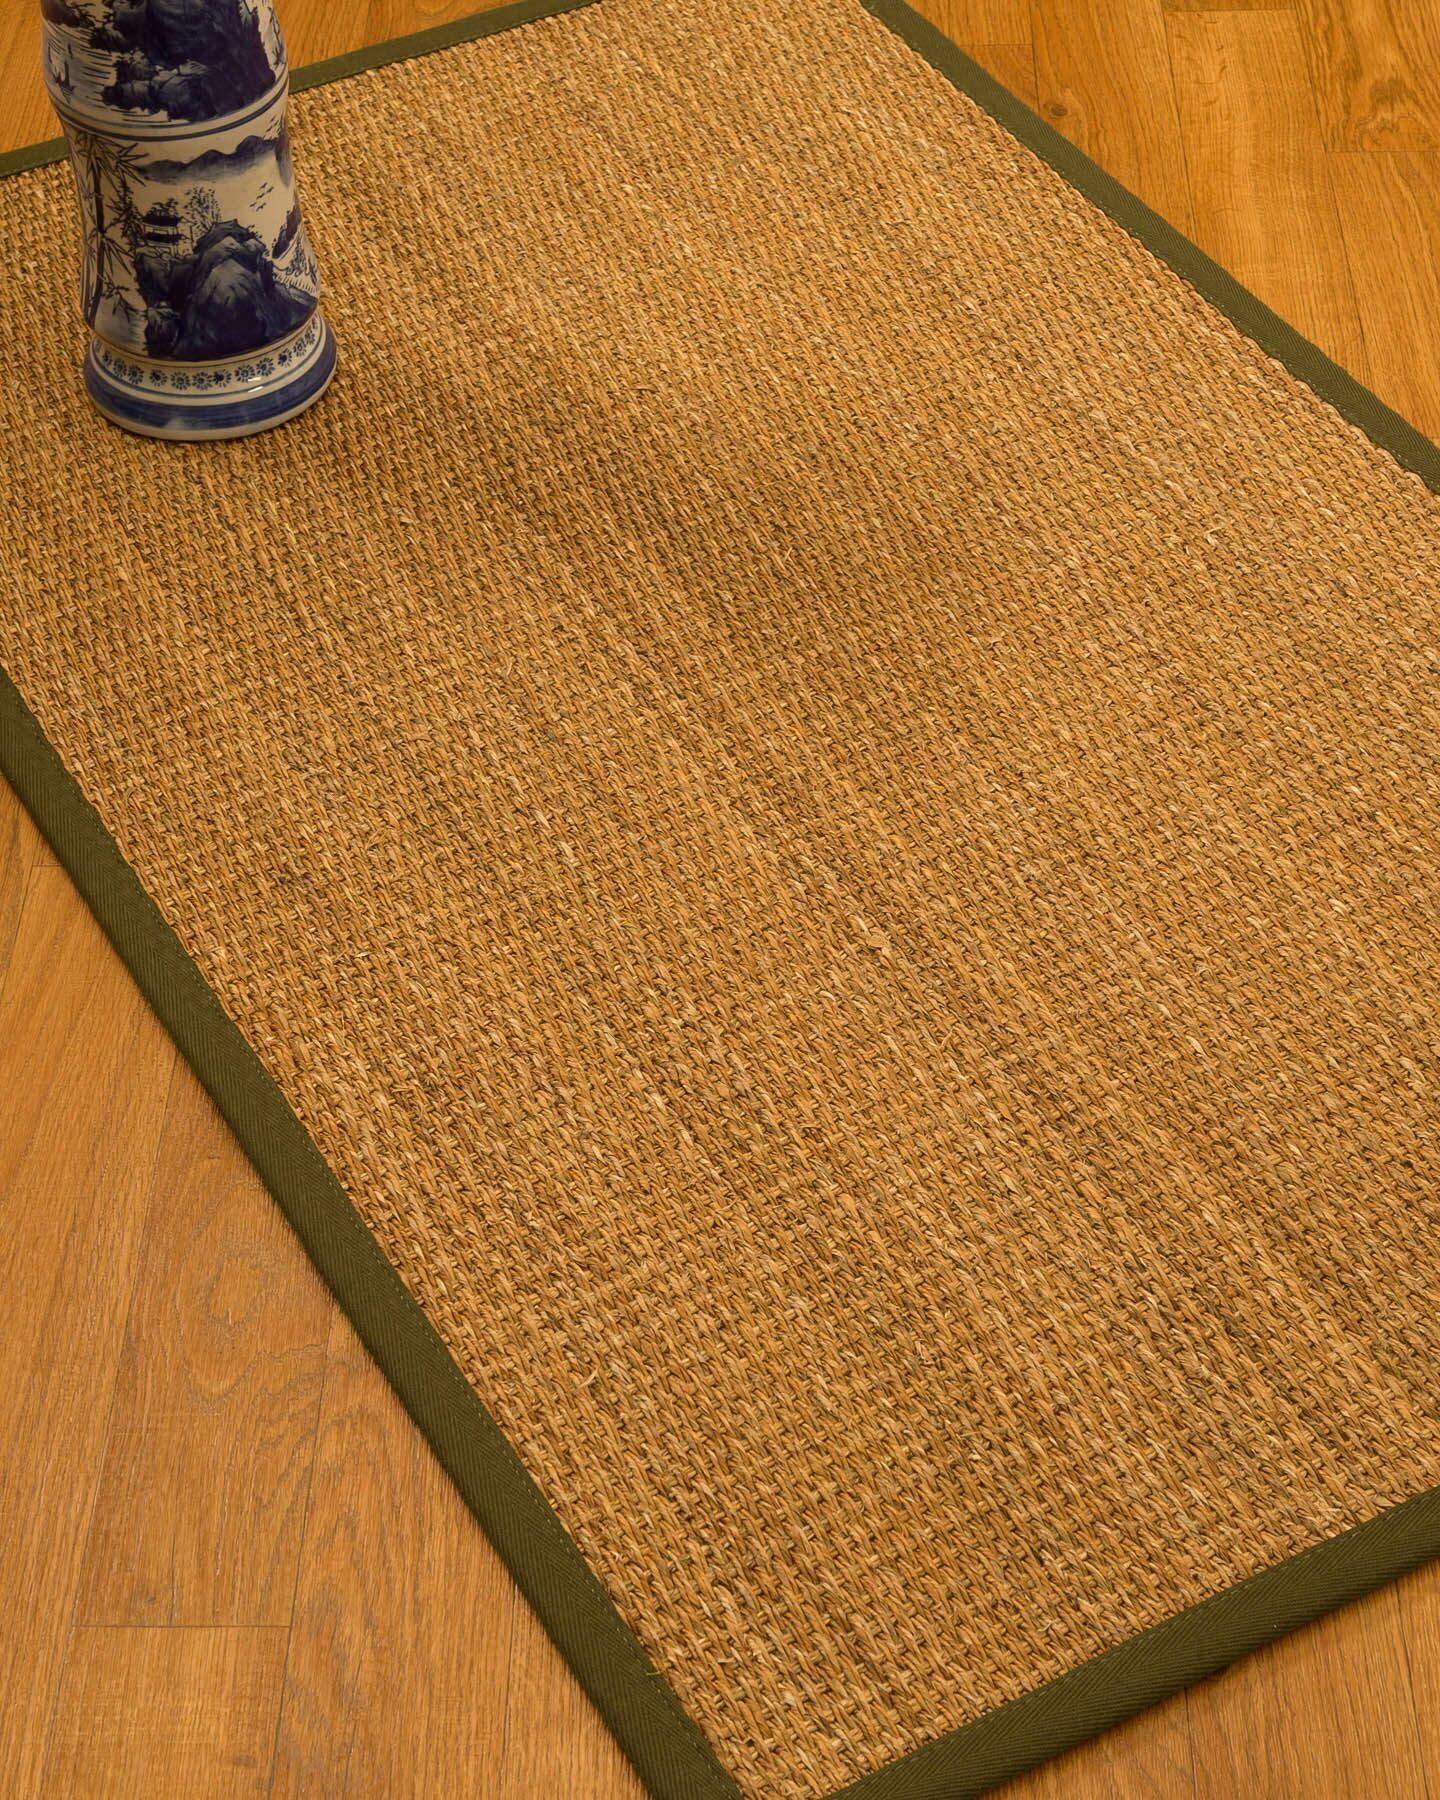 Kimberwood Border Hand-Woven Brown/Malt Area Rug Rug Size: Rectangle 4' x 6', Rug Pad Included: Yes